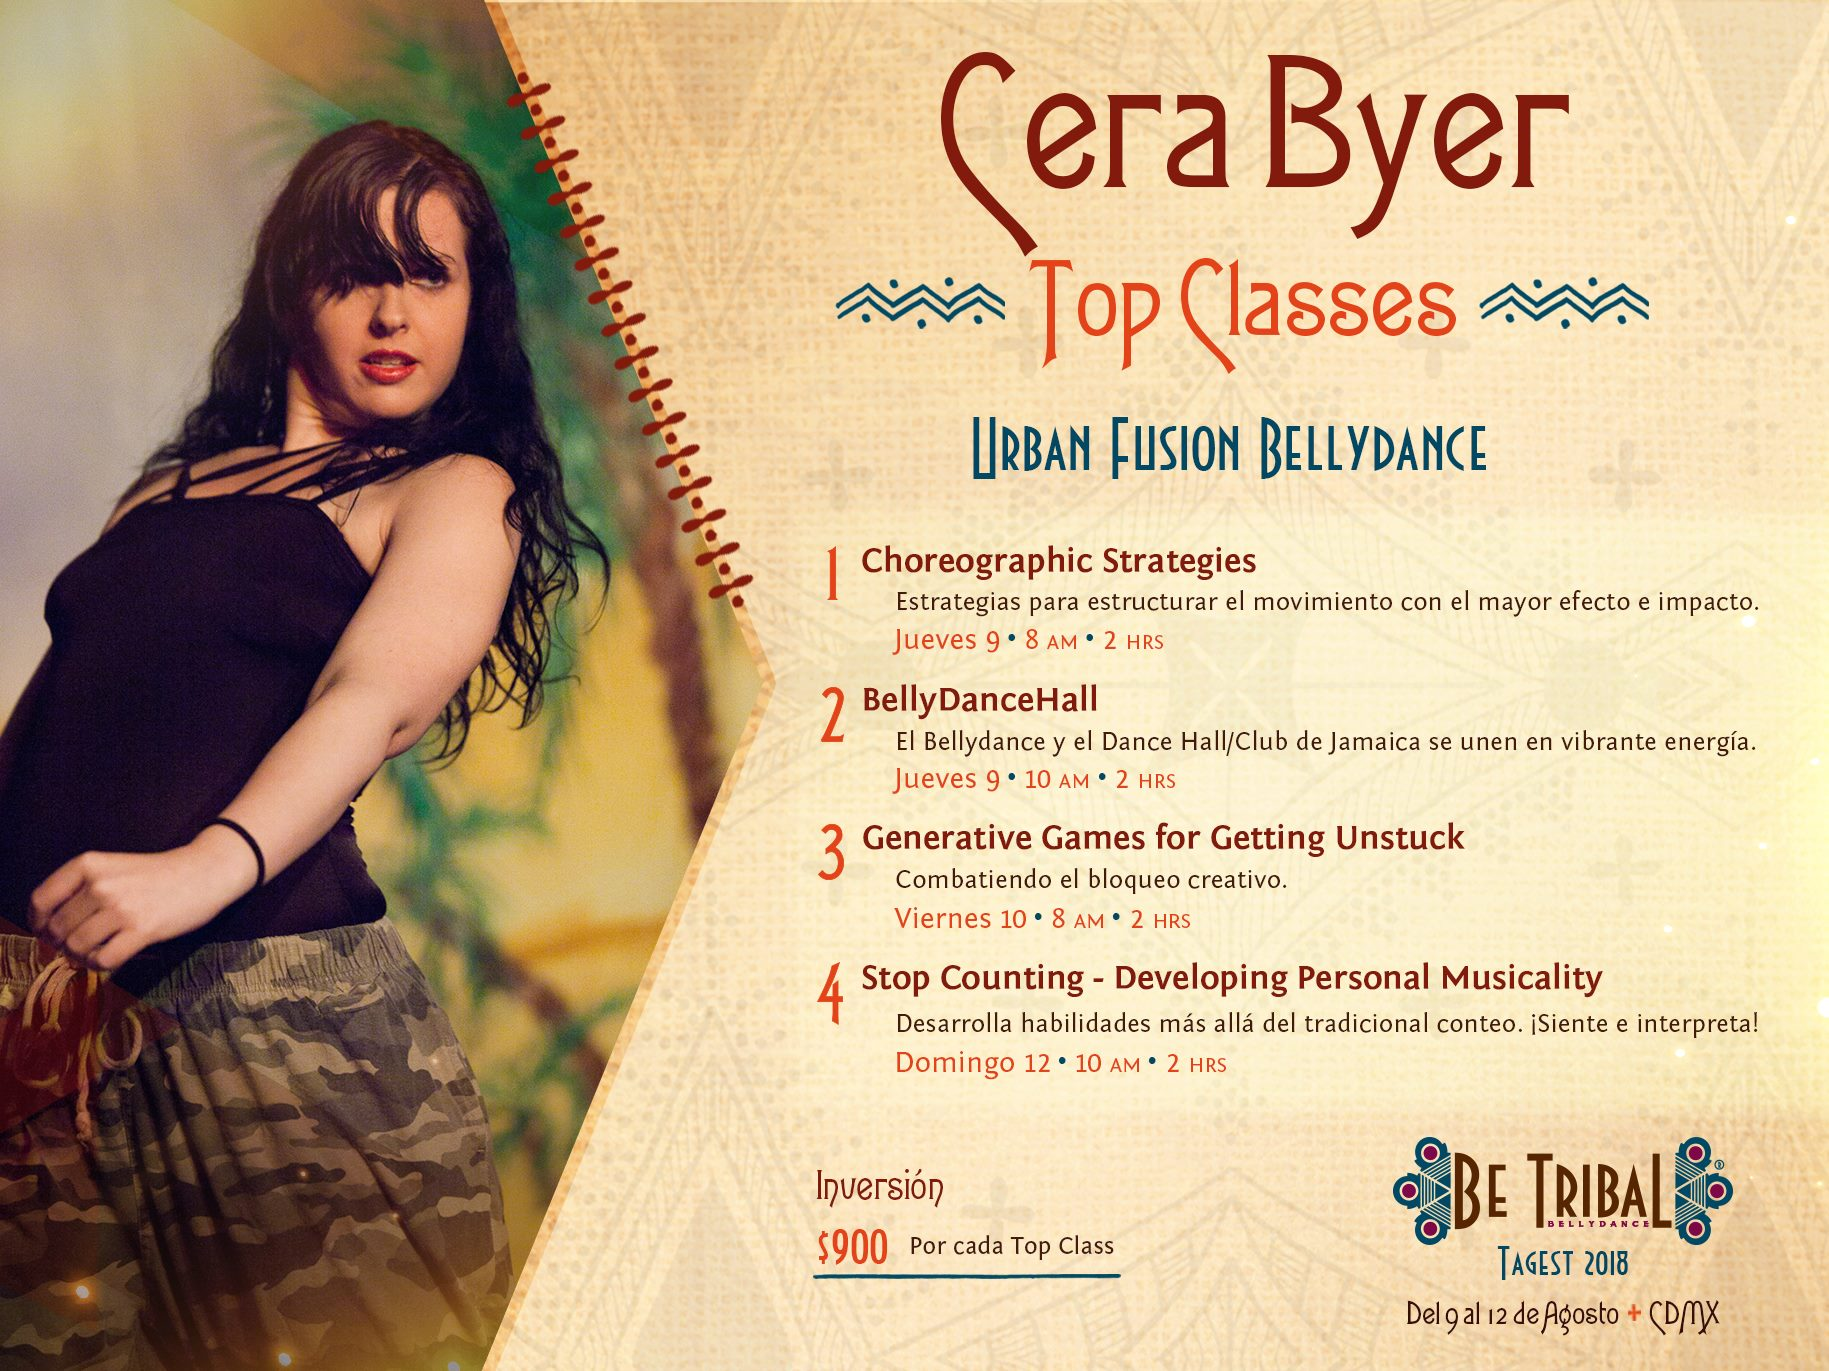 Top Classes Cera Byer